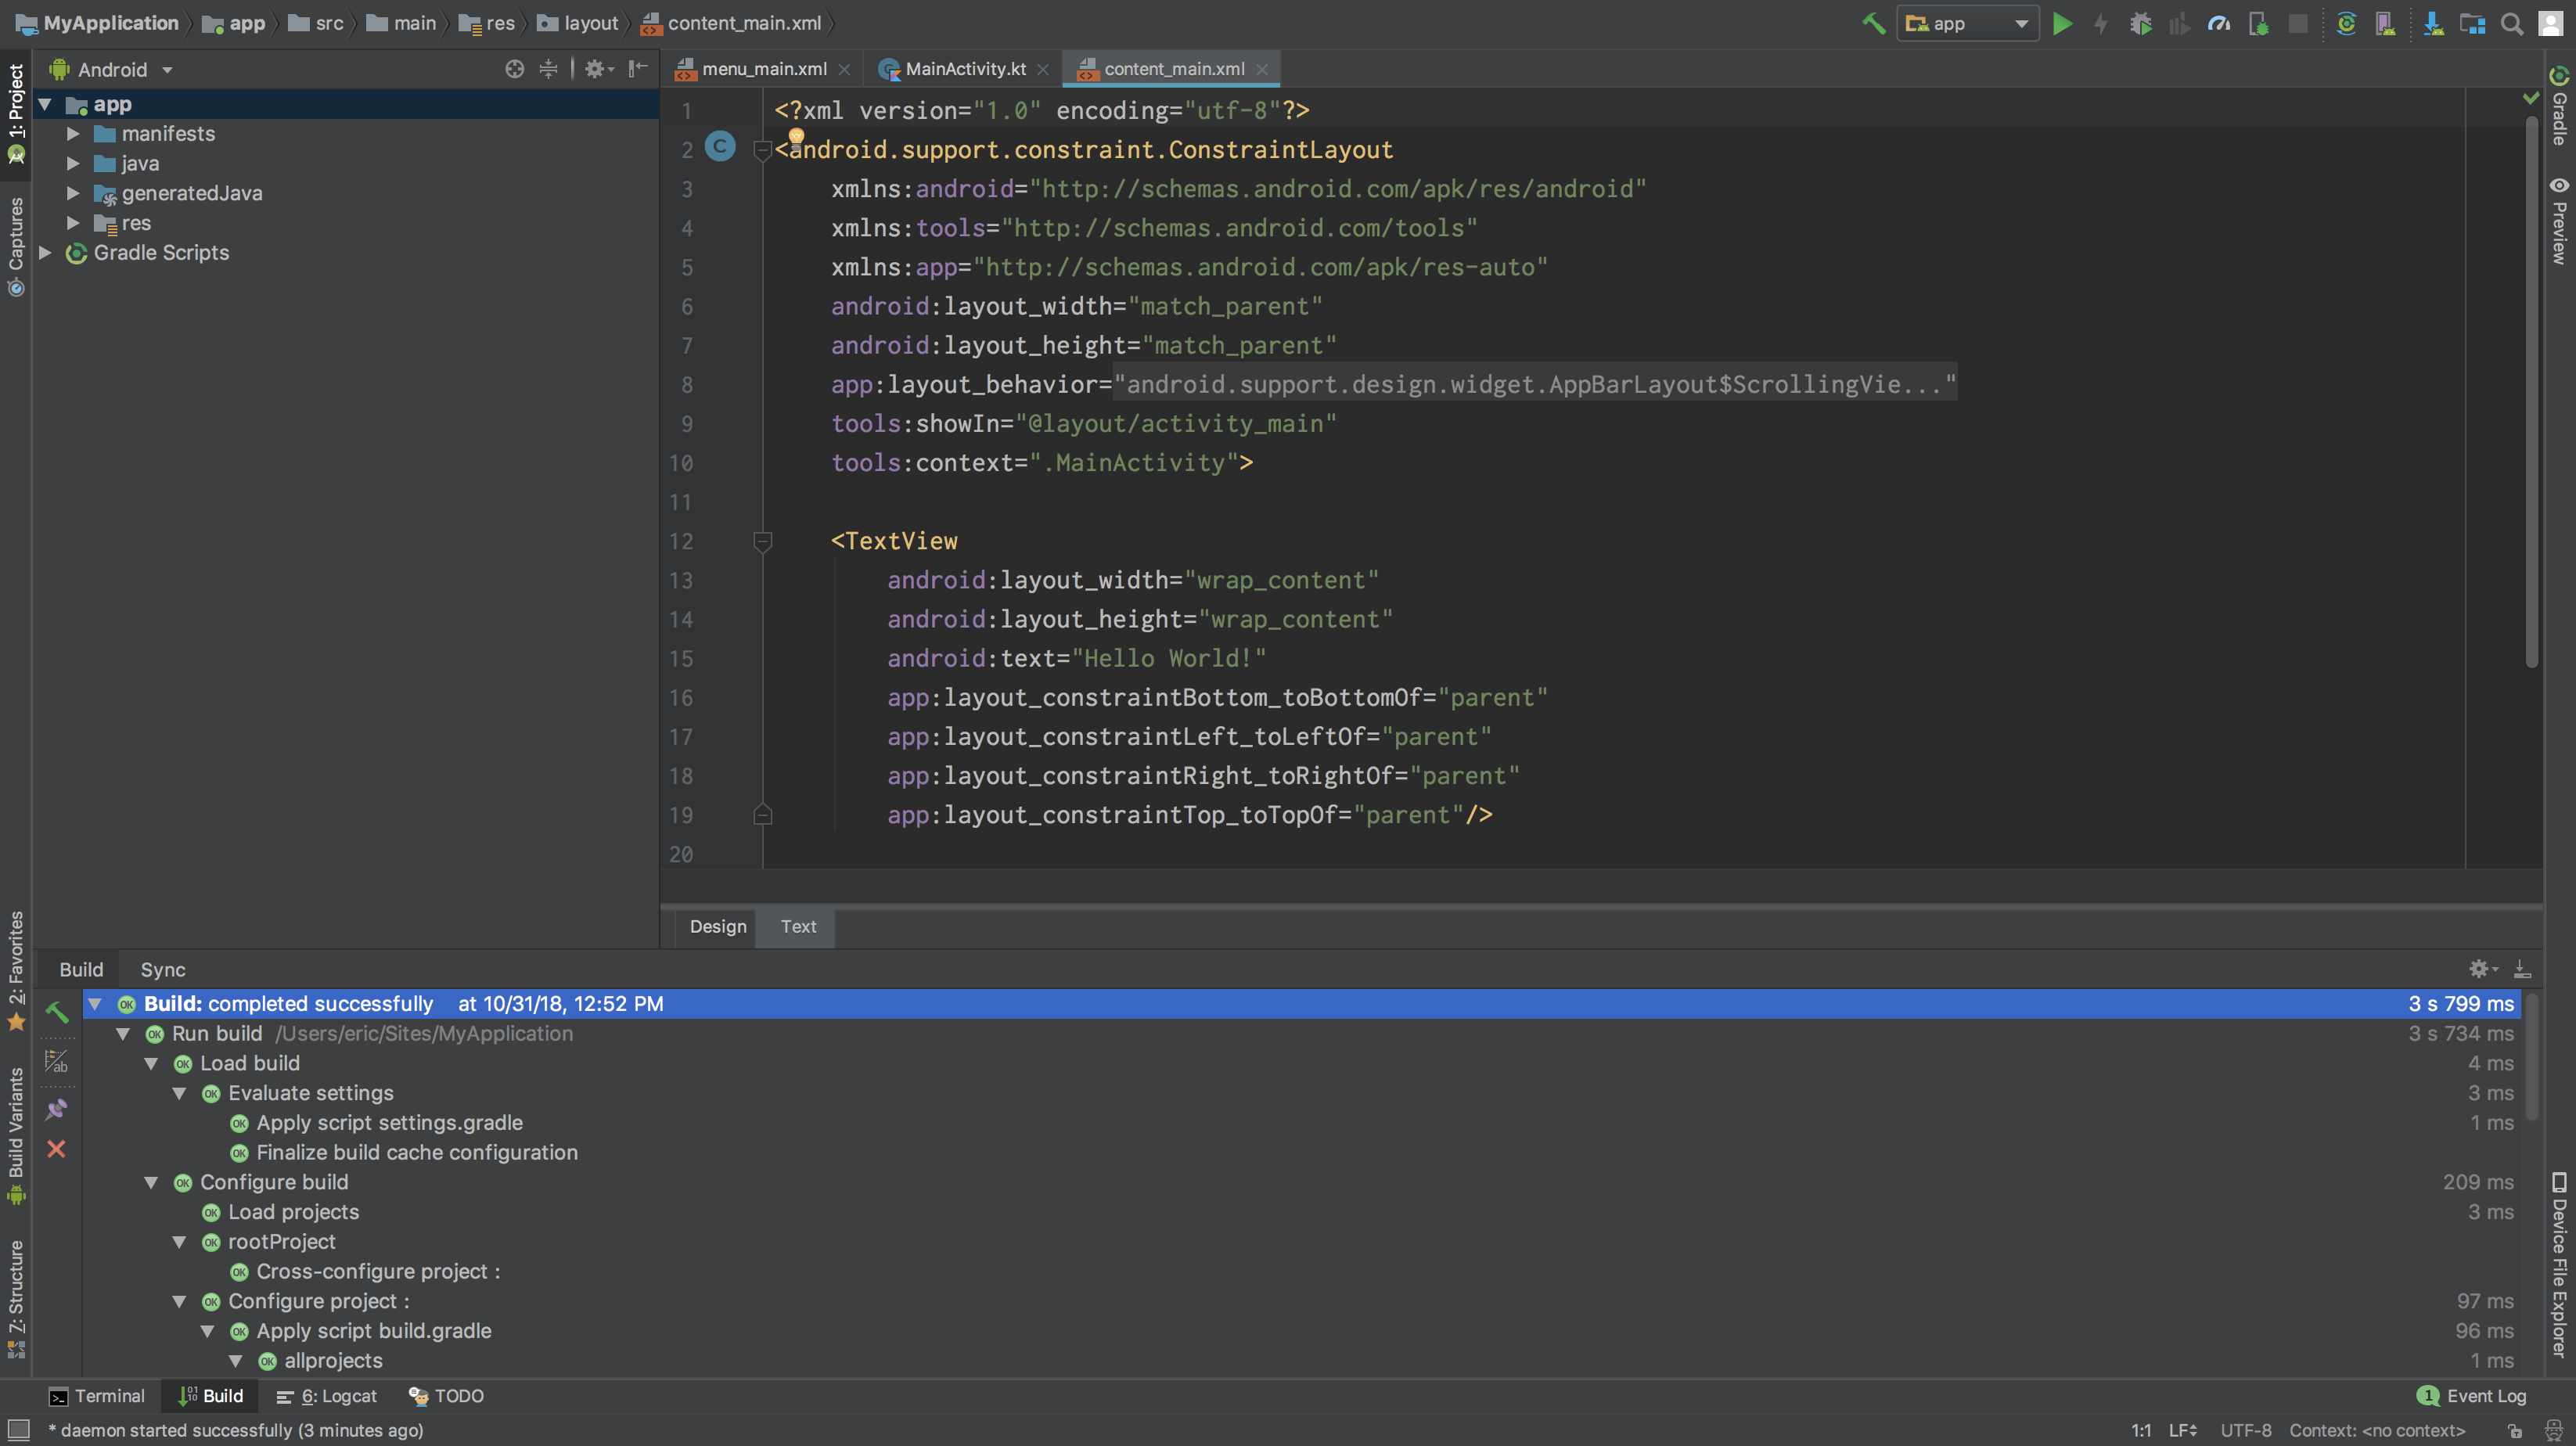 Screenshot of the Android Stuido app, displaying a new project's source code.